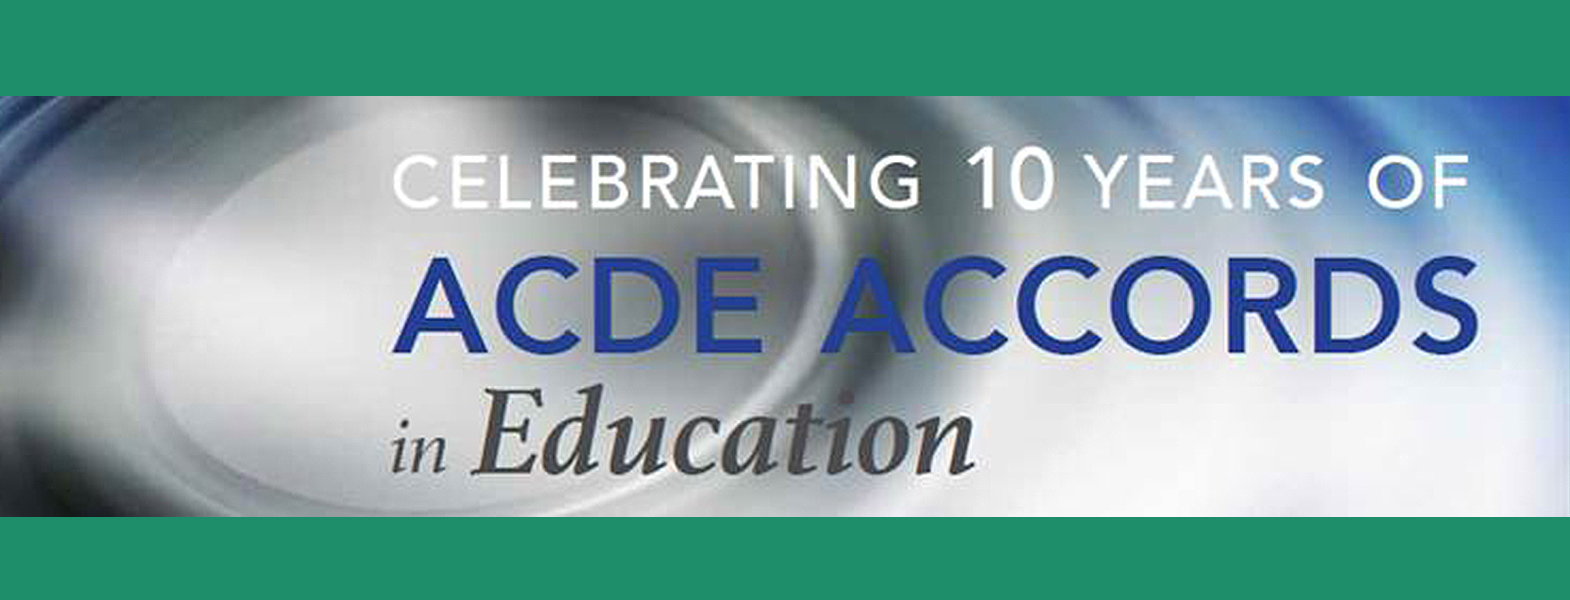 Celebrating 10 years of ACDE Accords in Education